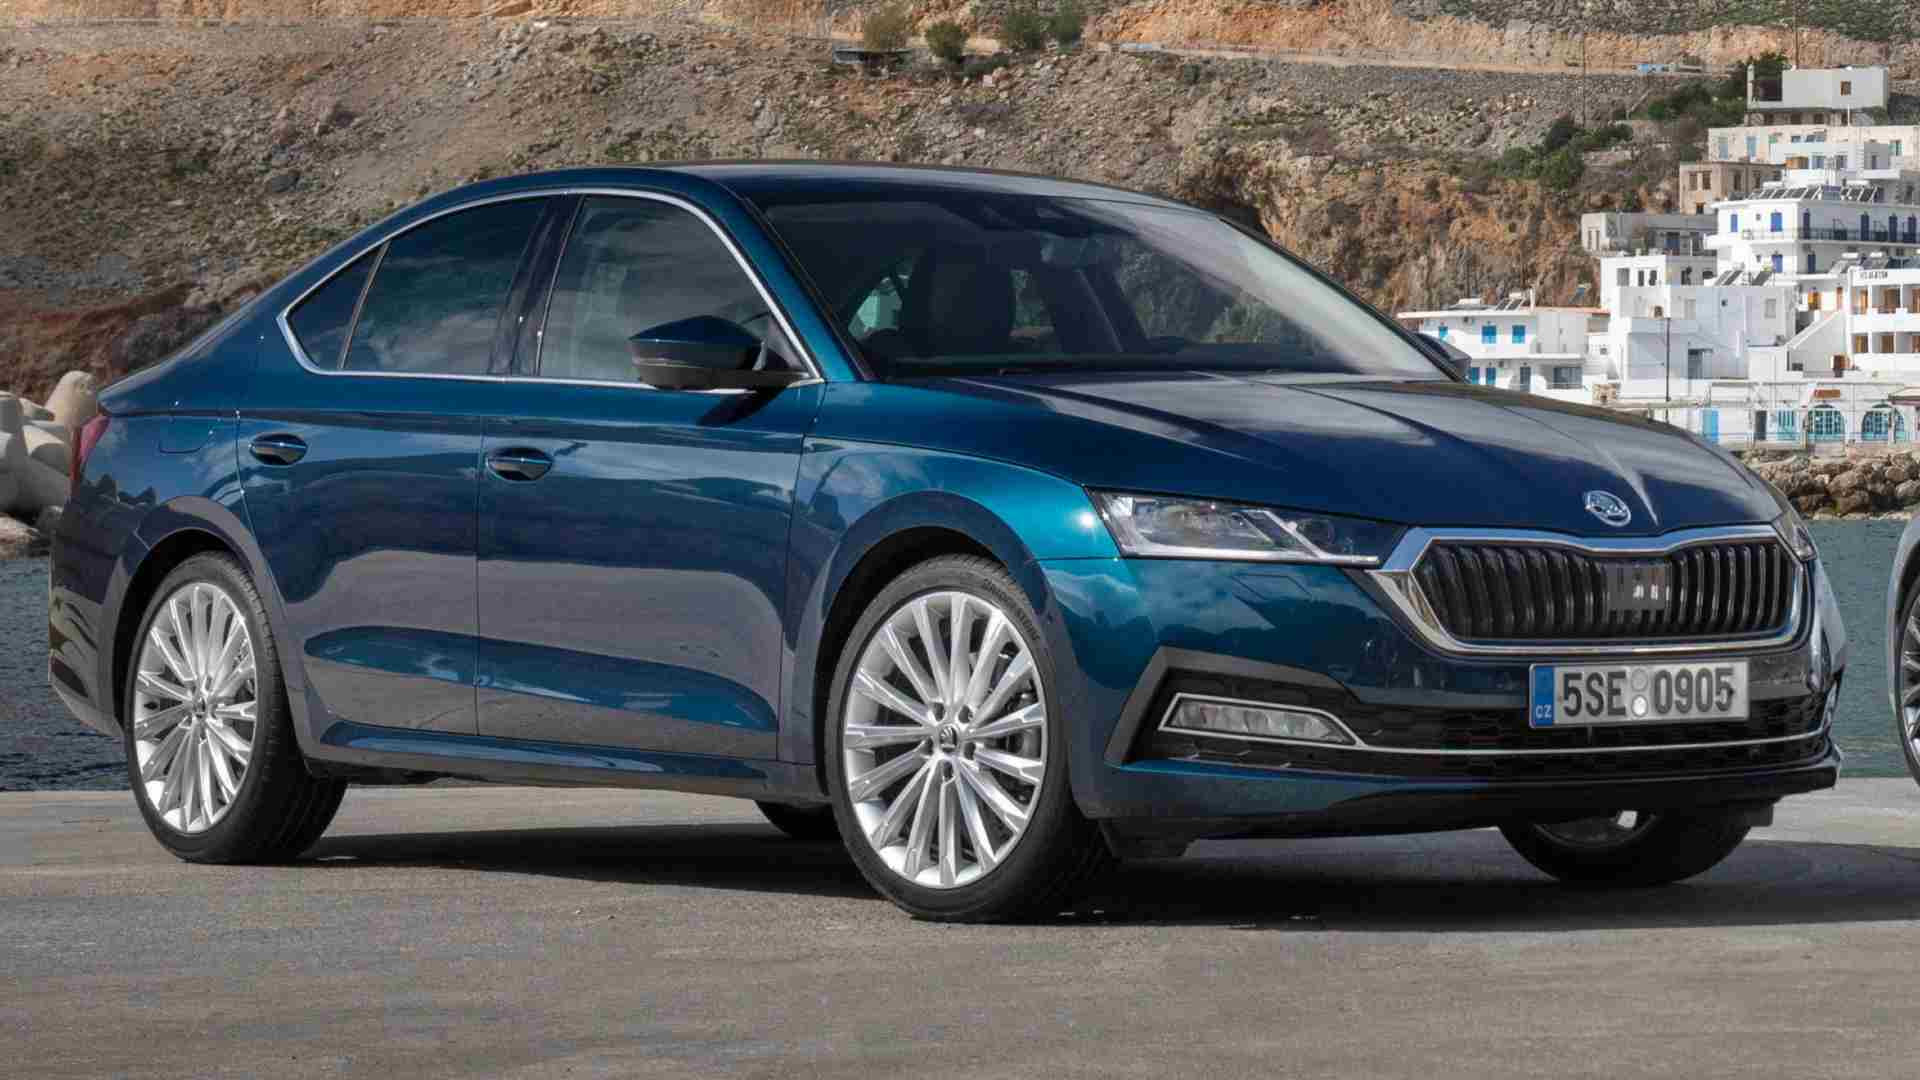 The new Skoda Octavia is expected to only be offered with a 2.0-litre petrol engine at launch. Image: Skoda